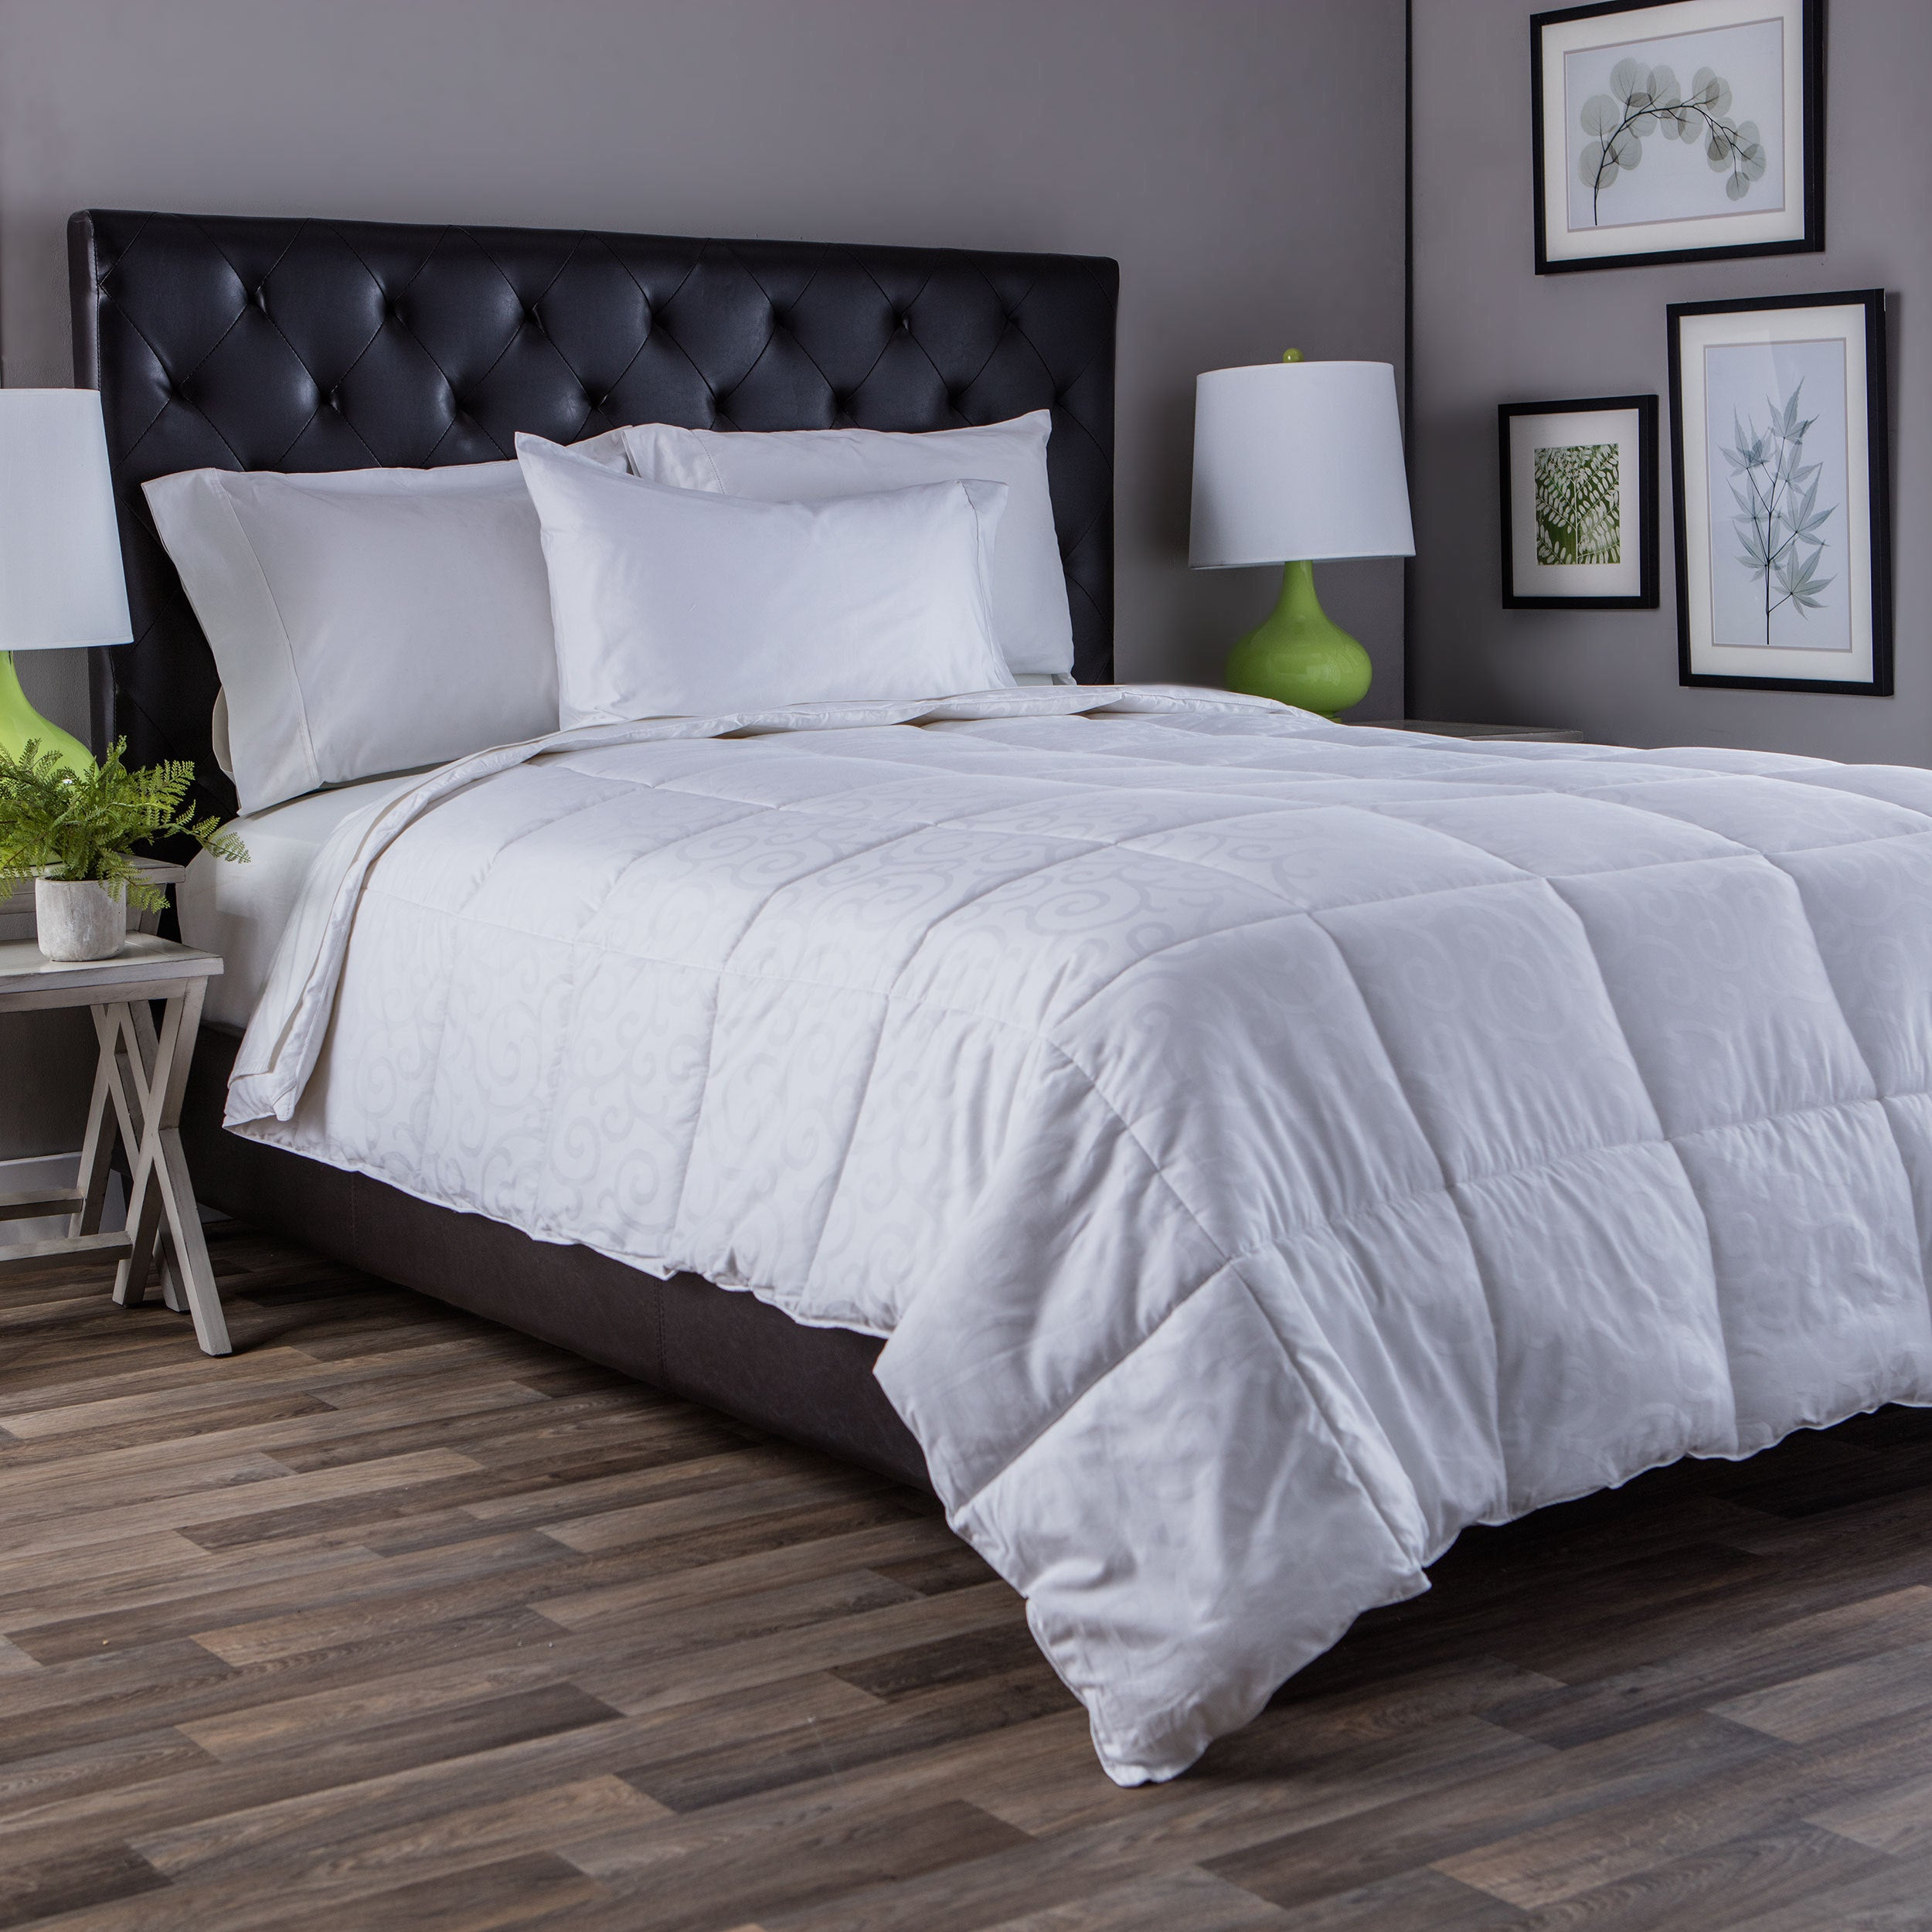 product today shipping bedding free reviews bath comforter alternative cotton down overstock sateen